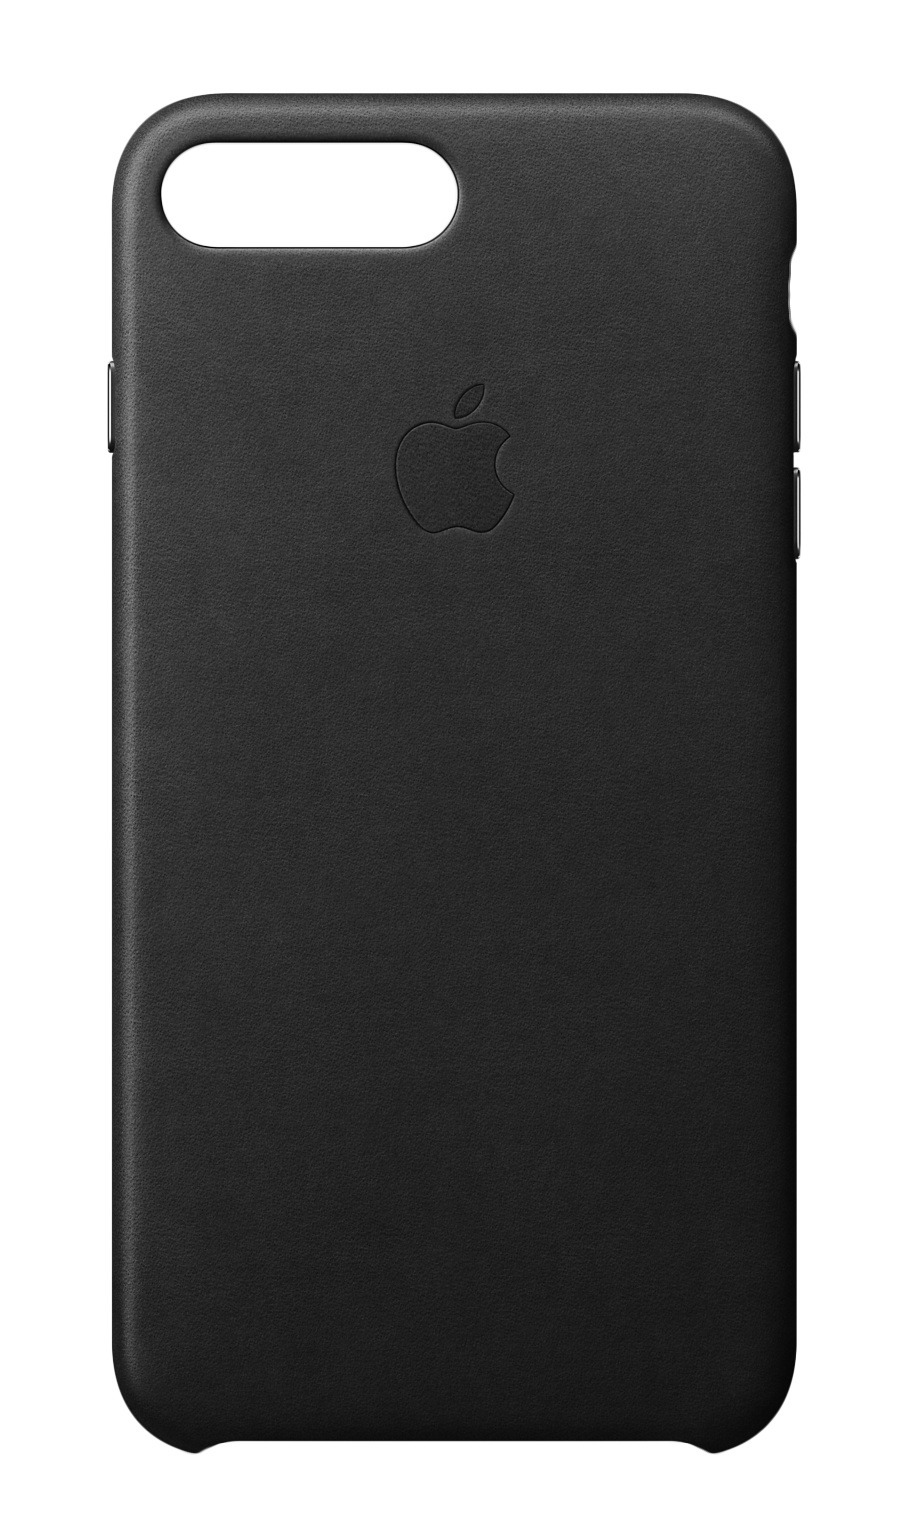 Apple telefoonhoesje Leather Case voor iPhone 8 Plus 7 Plus zwart